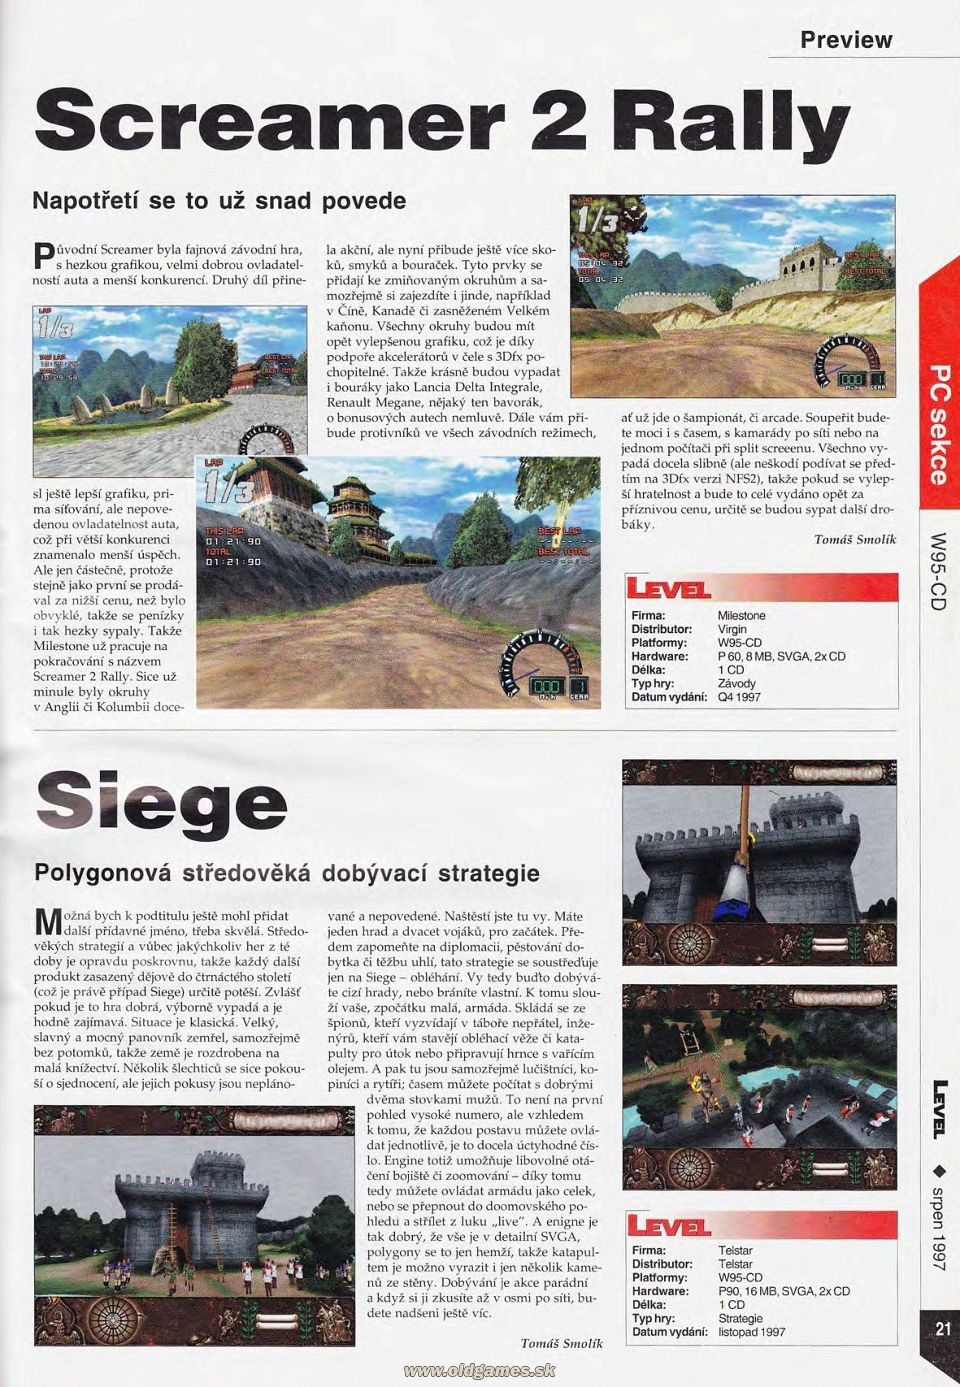 Preview: Screamer 2 Rally, Siege